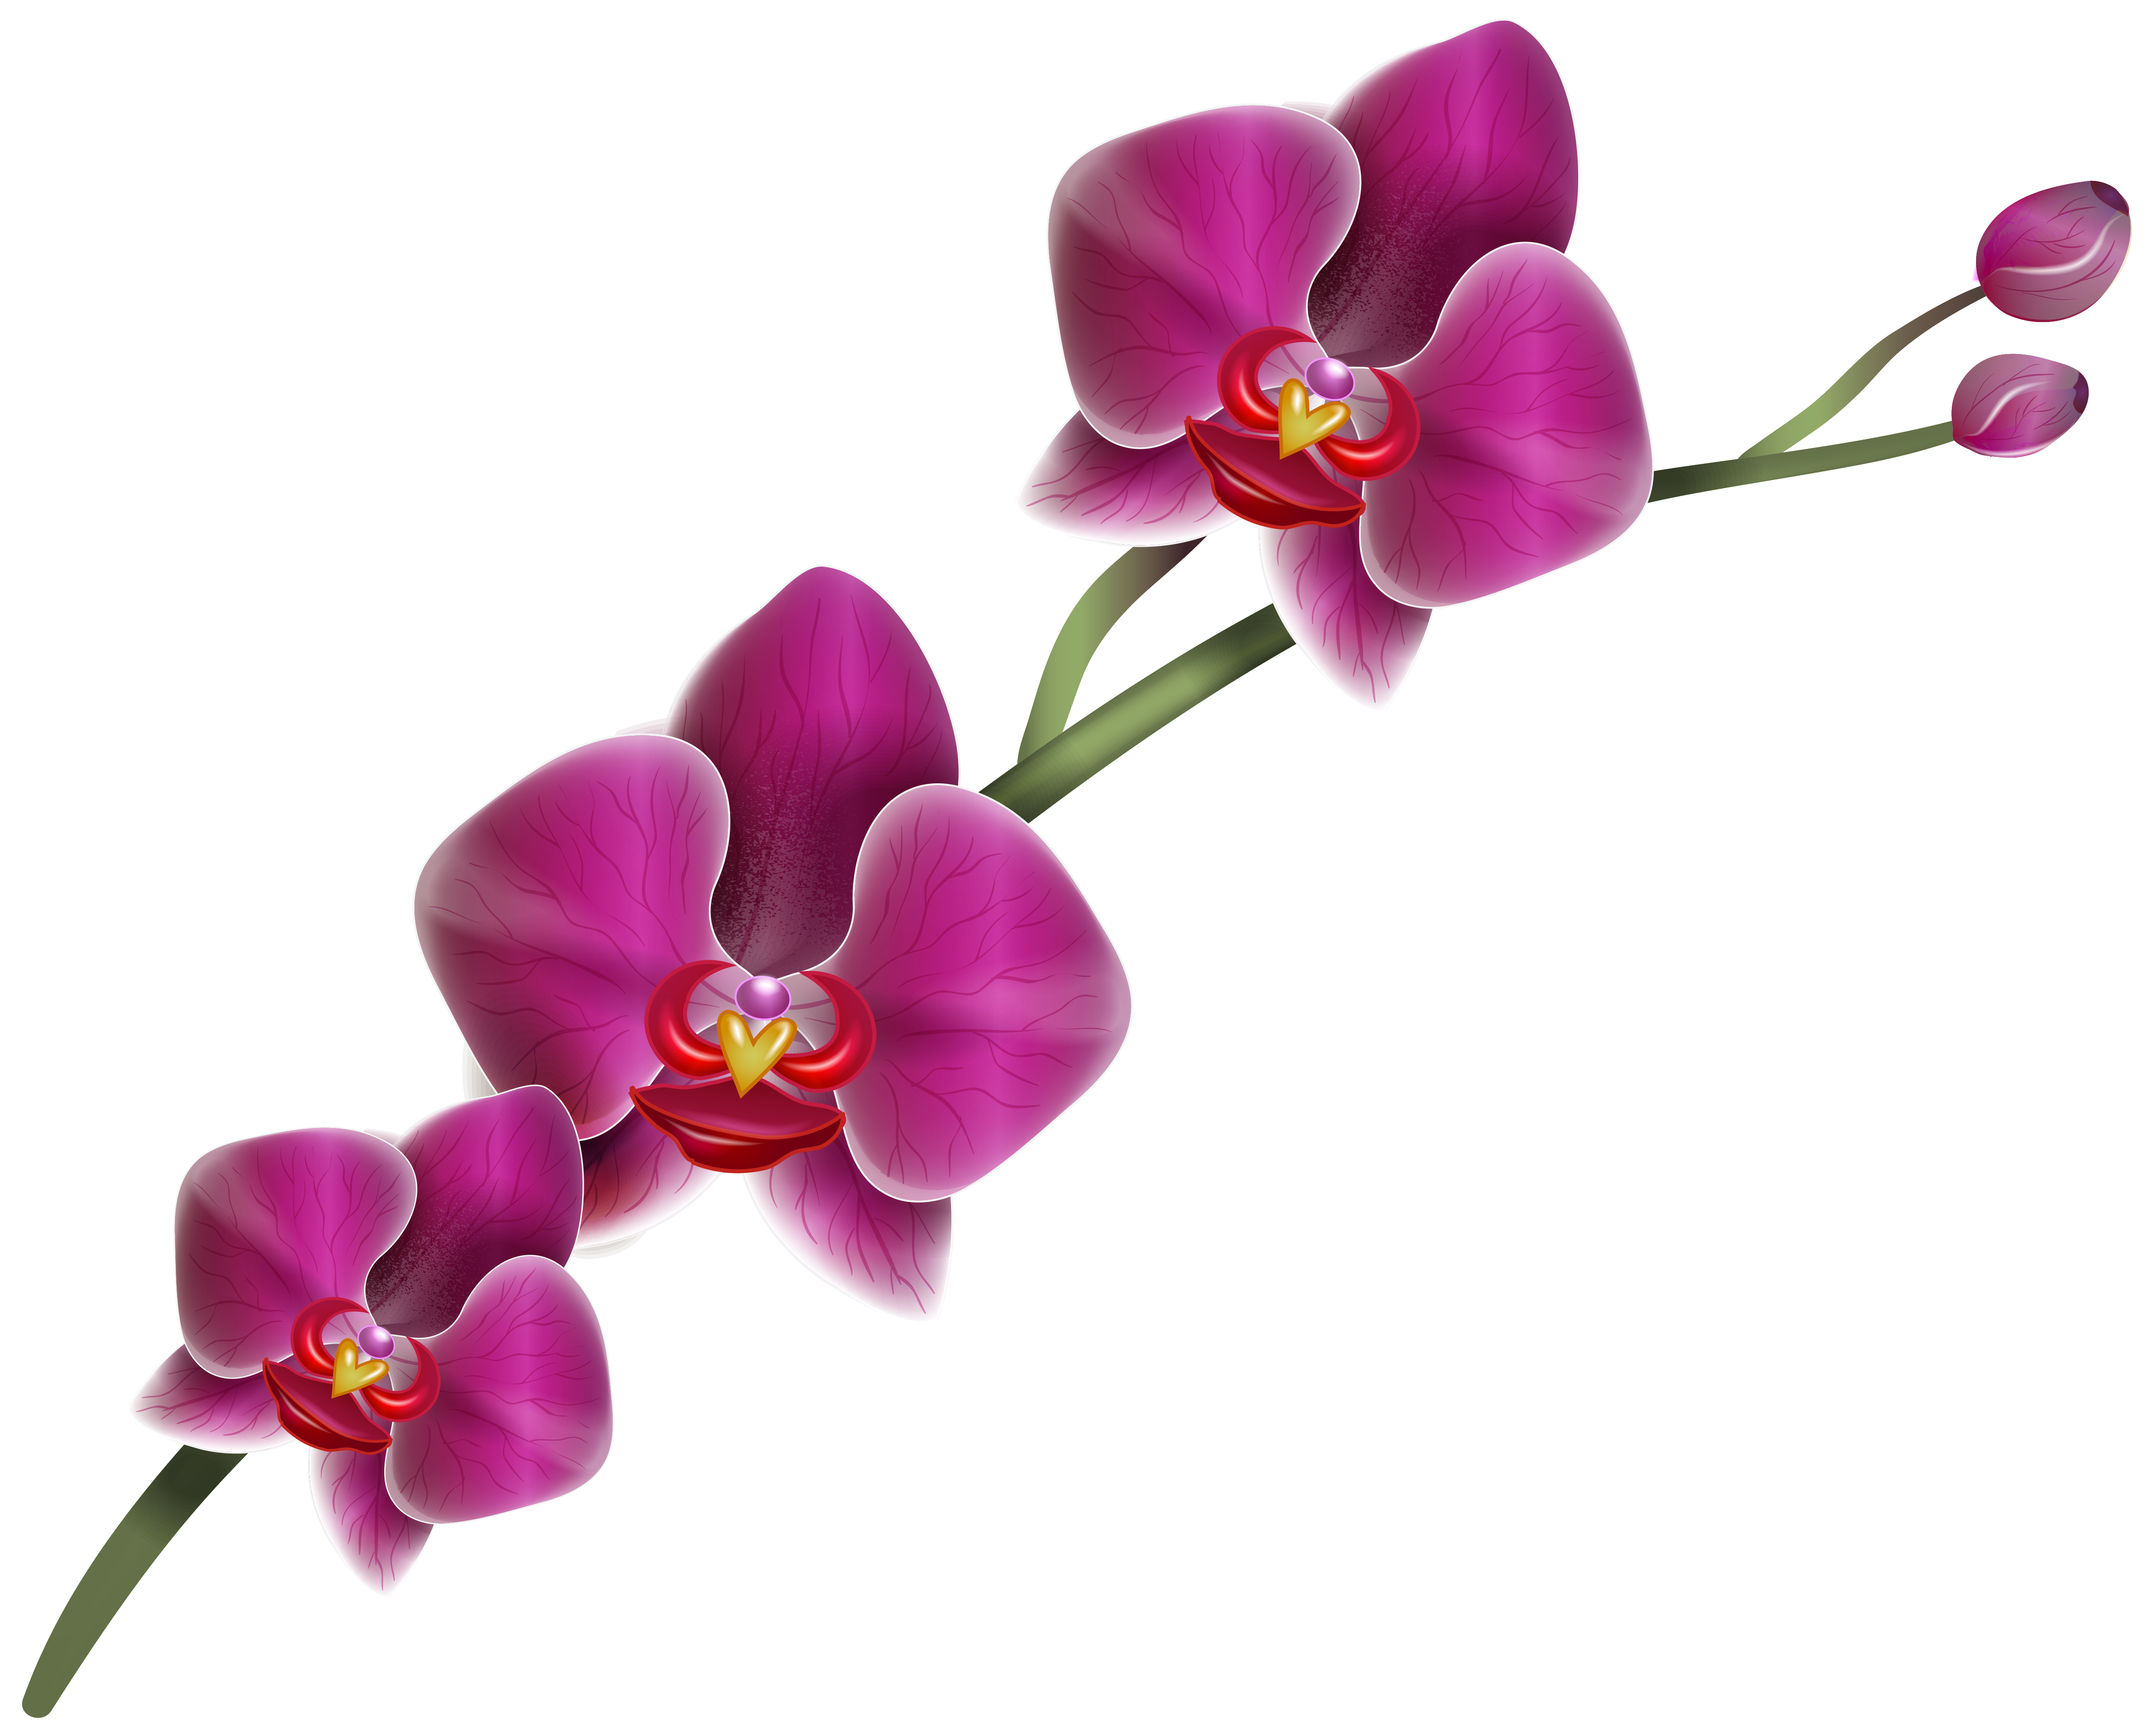 Orchid Flower Clipart Free Download Best Orchid Flower Clipart On